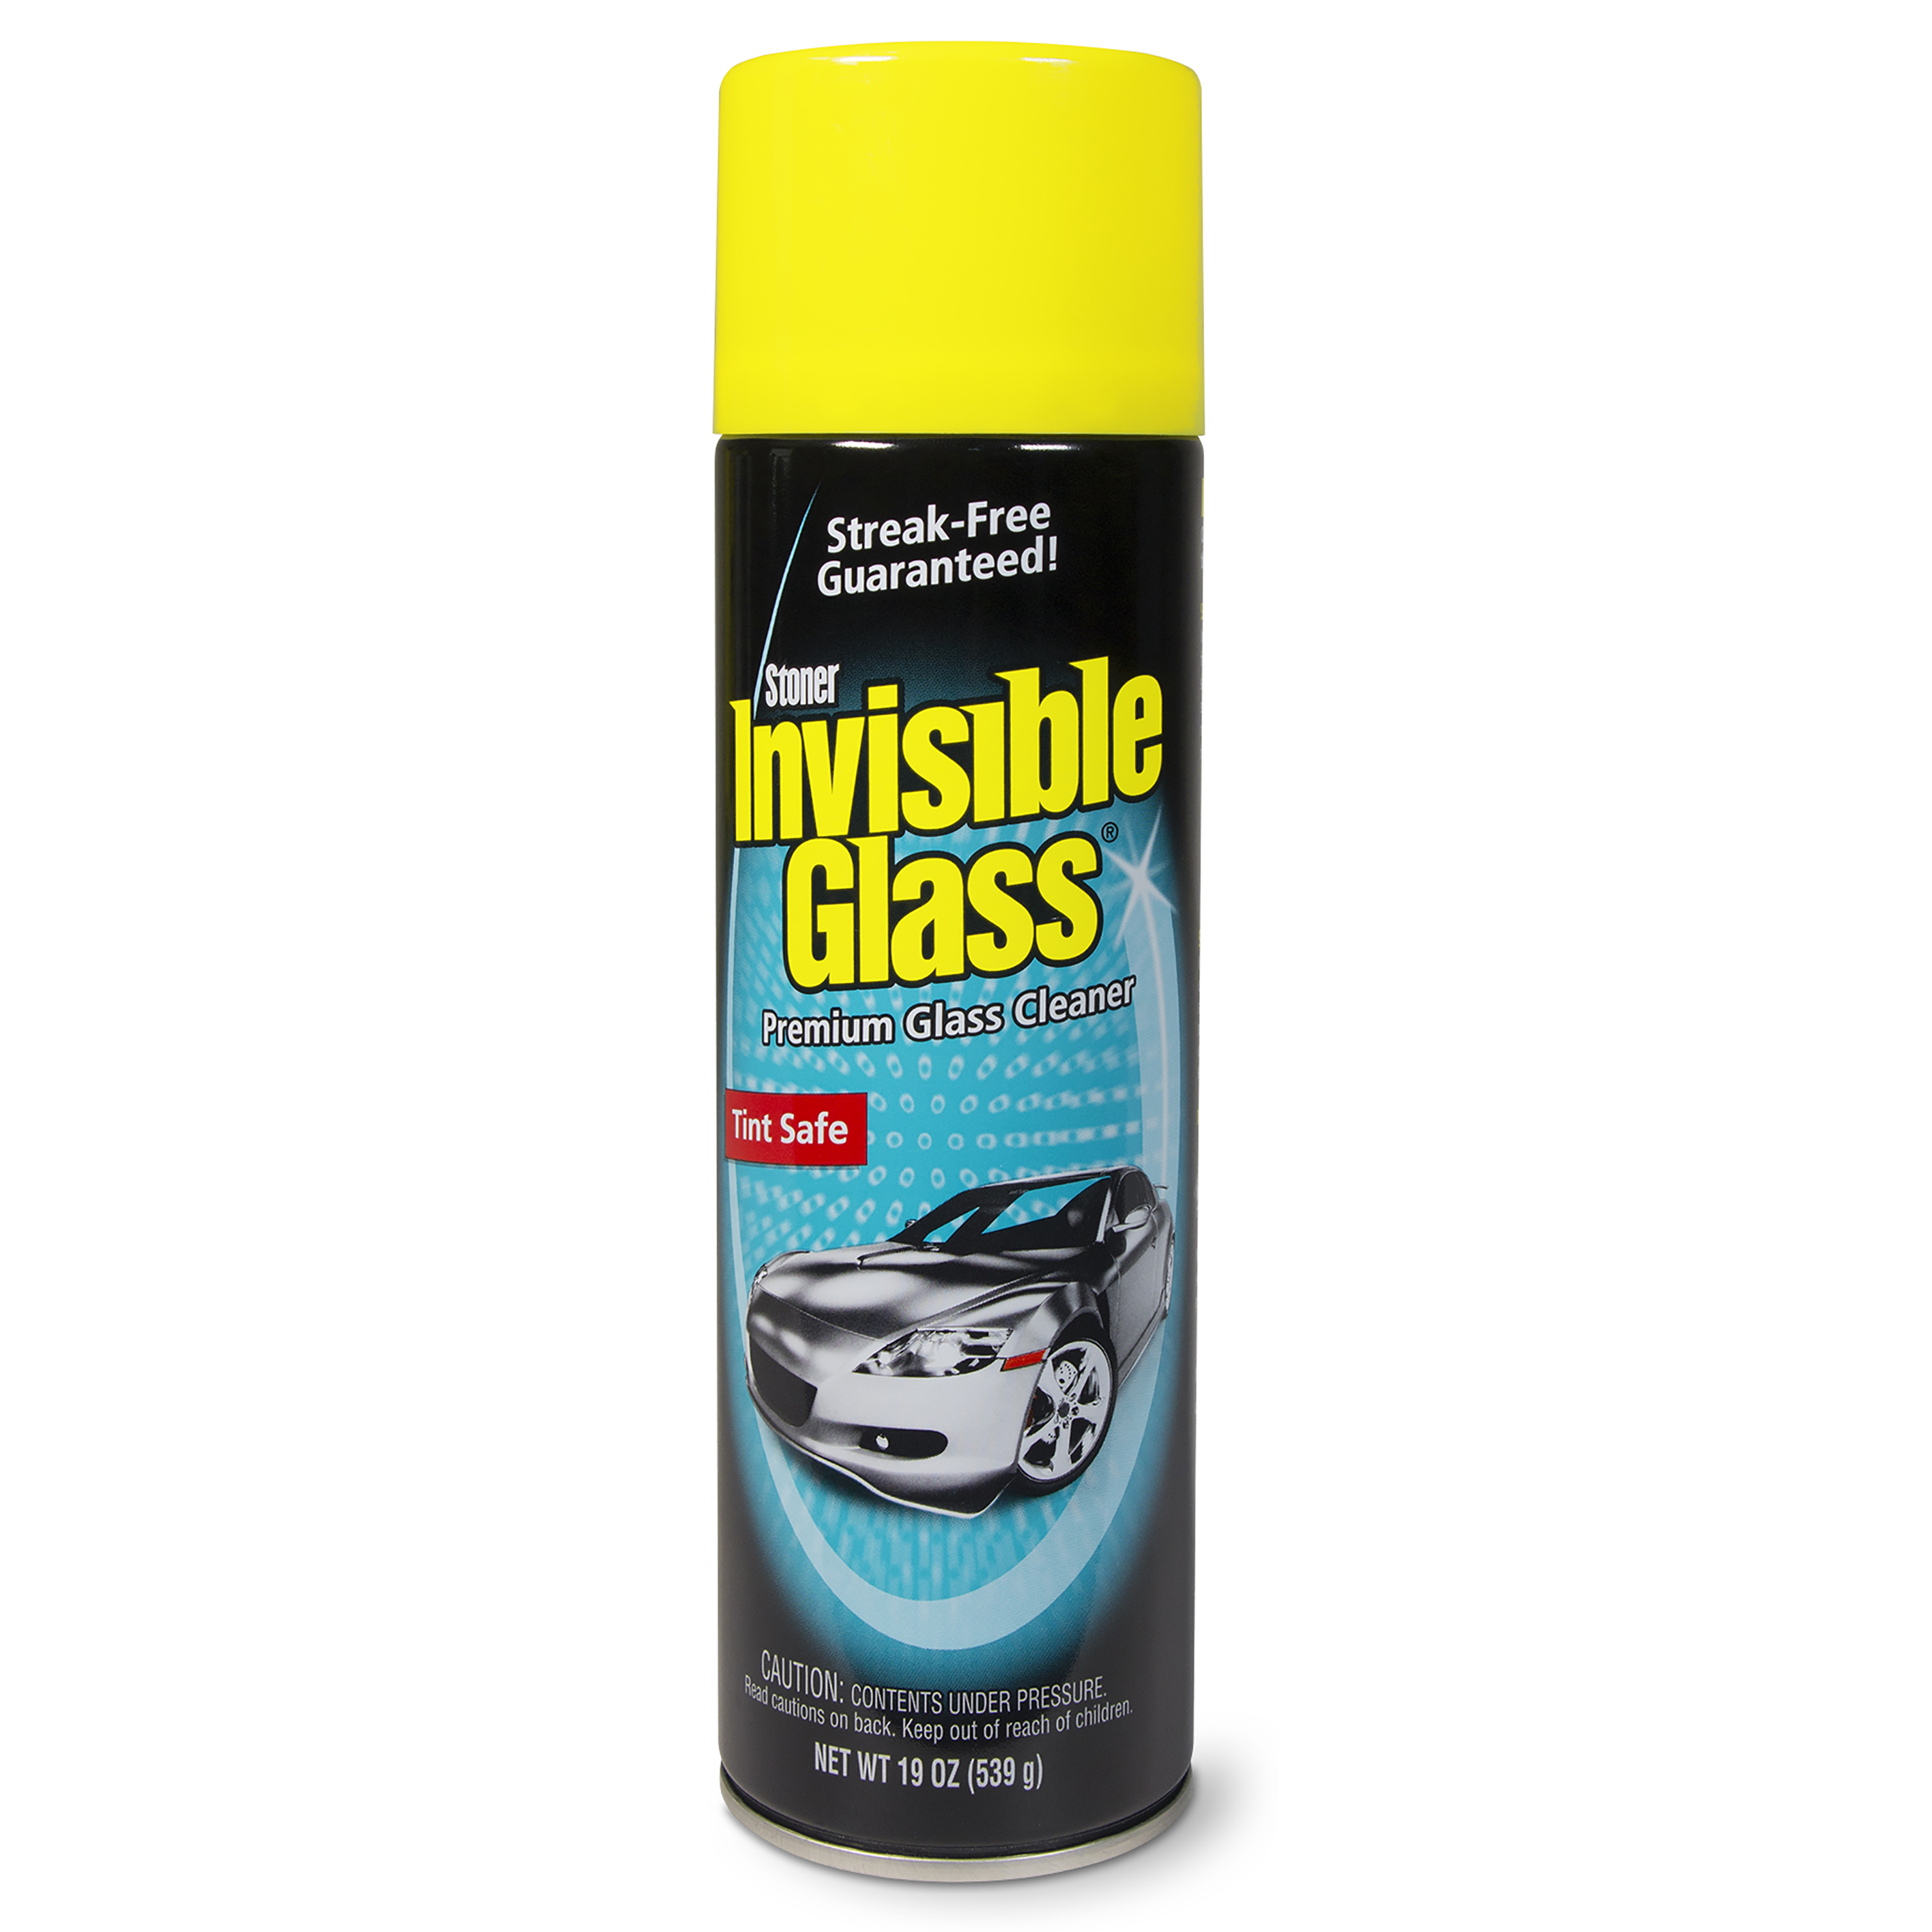 Invisible Glass Automotive Glass Cleaner, 19 oz - Walmart.com